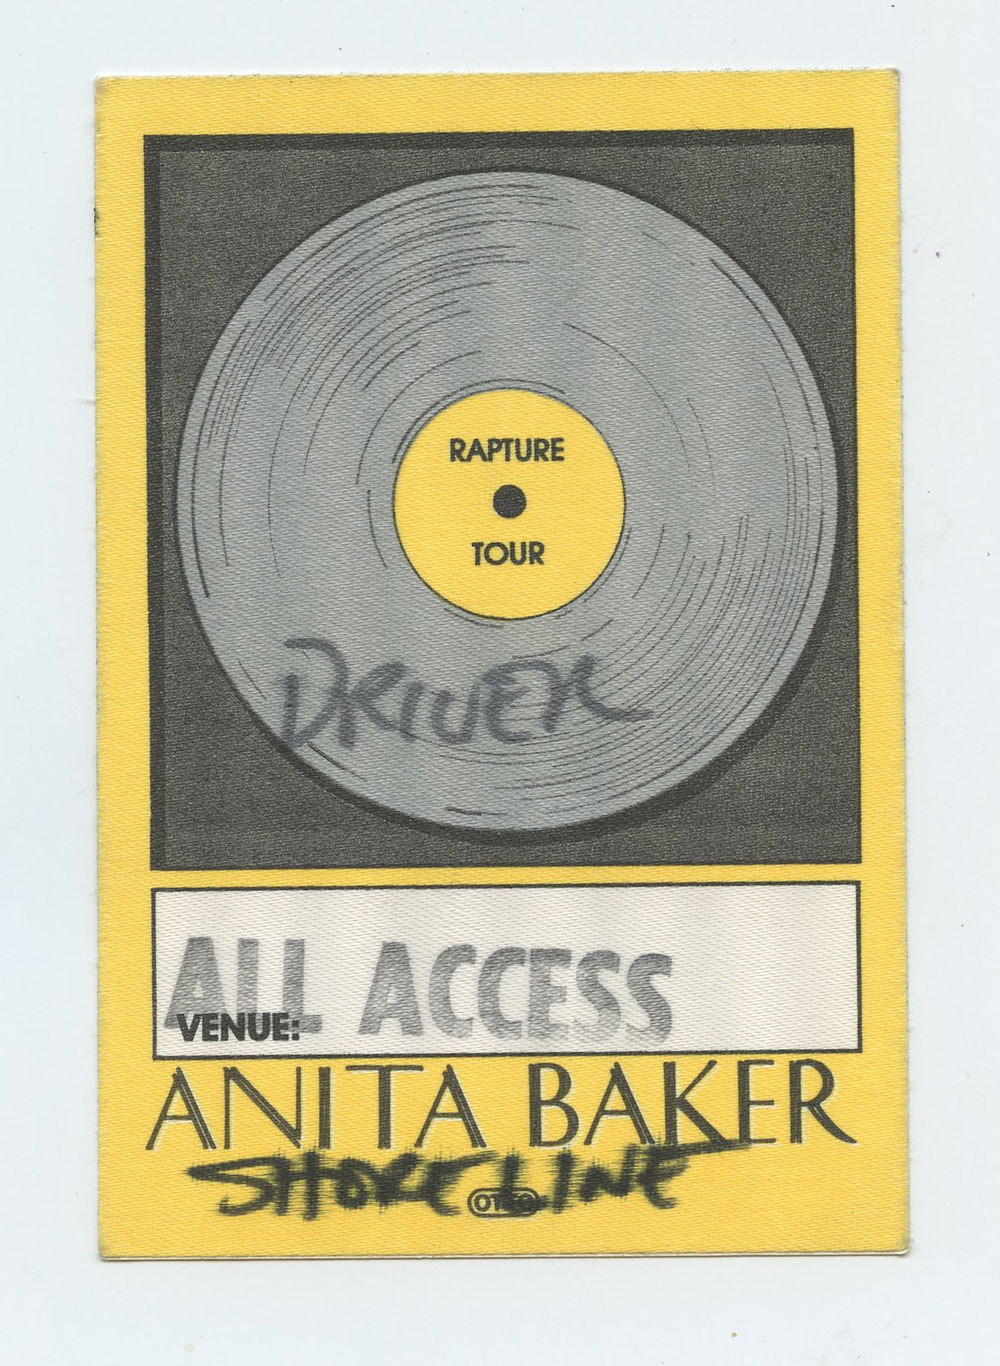 Anita Baker 1986 Rapture Tour Backstage Pass